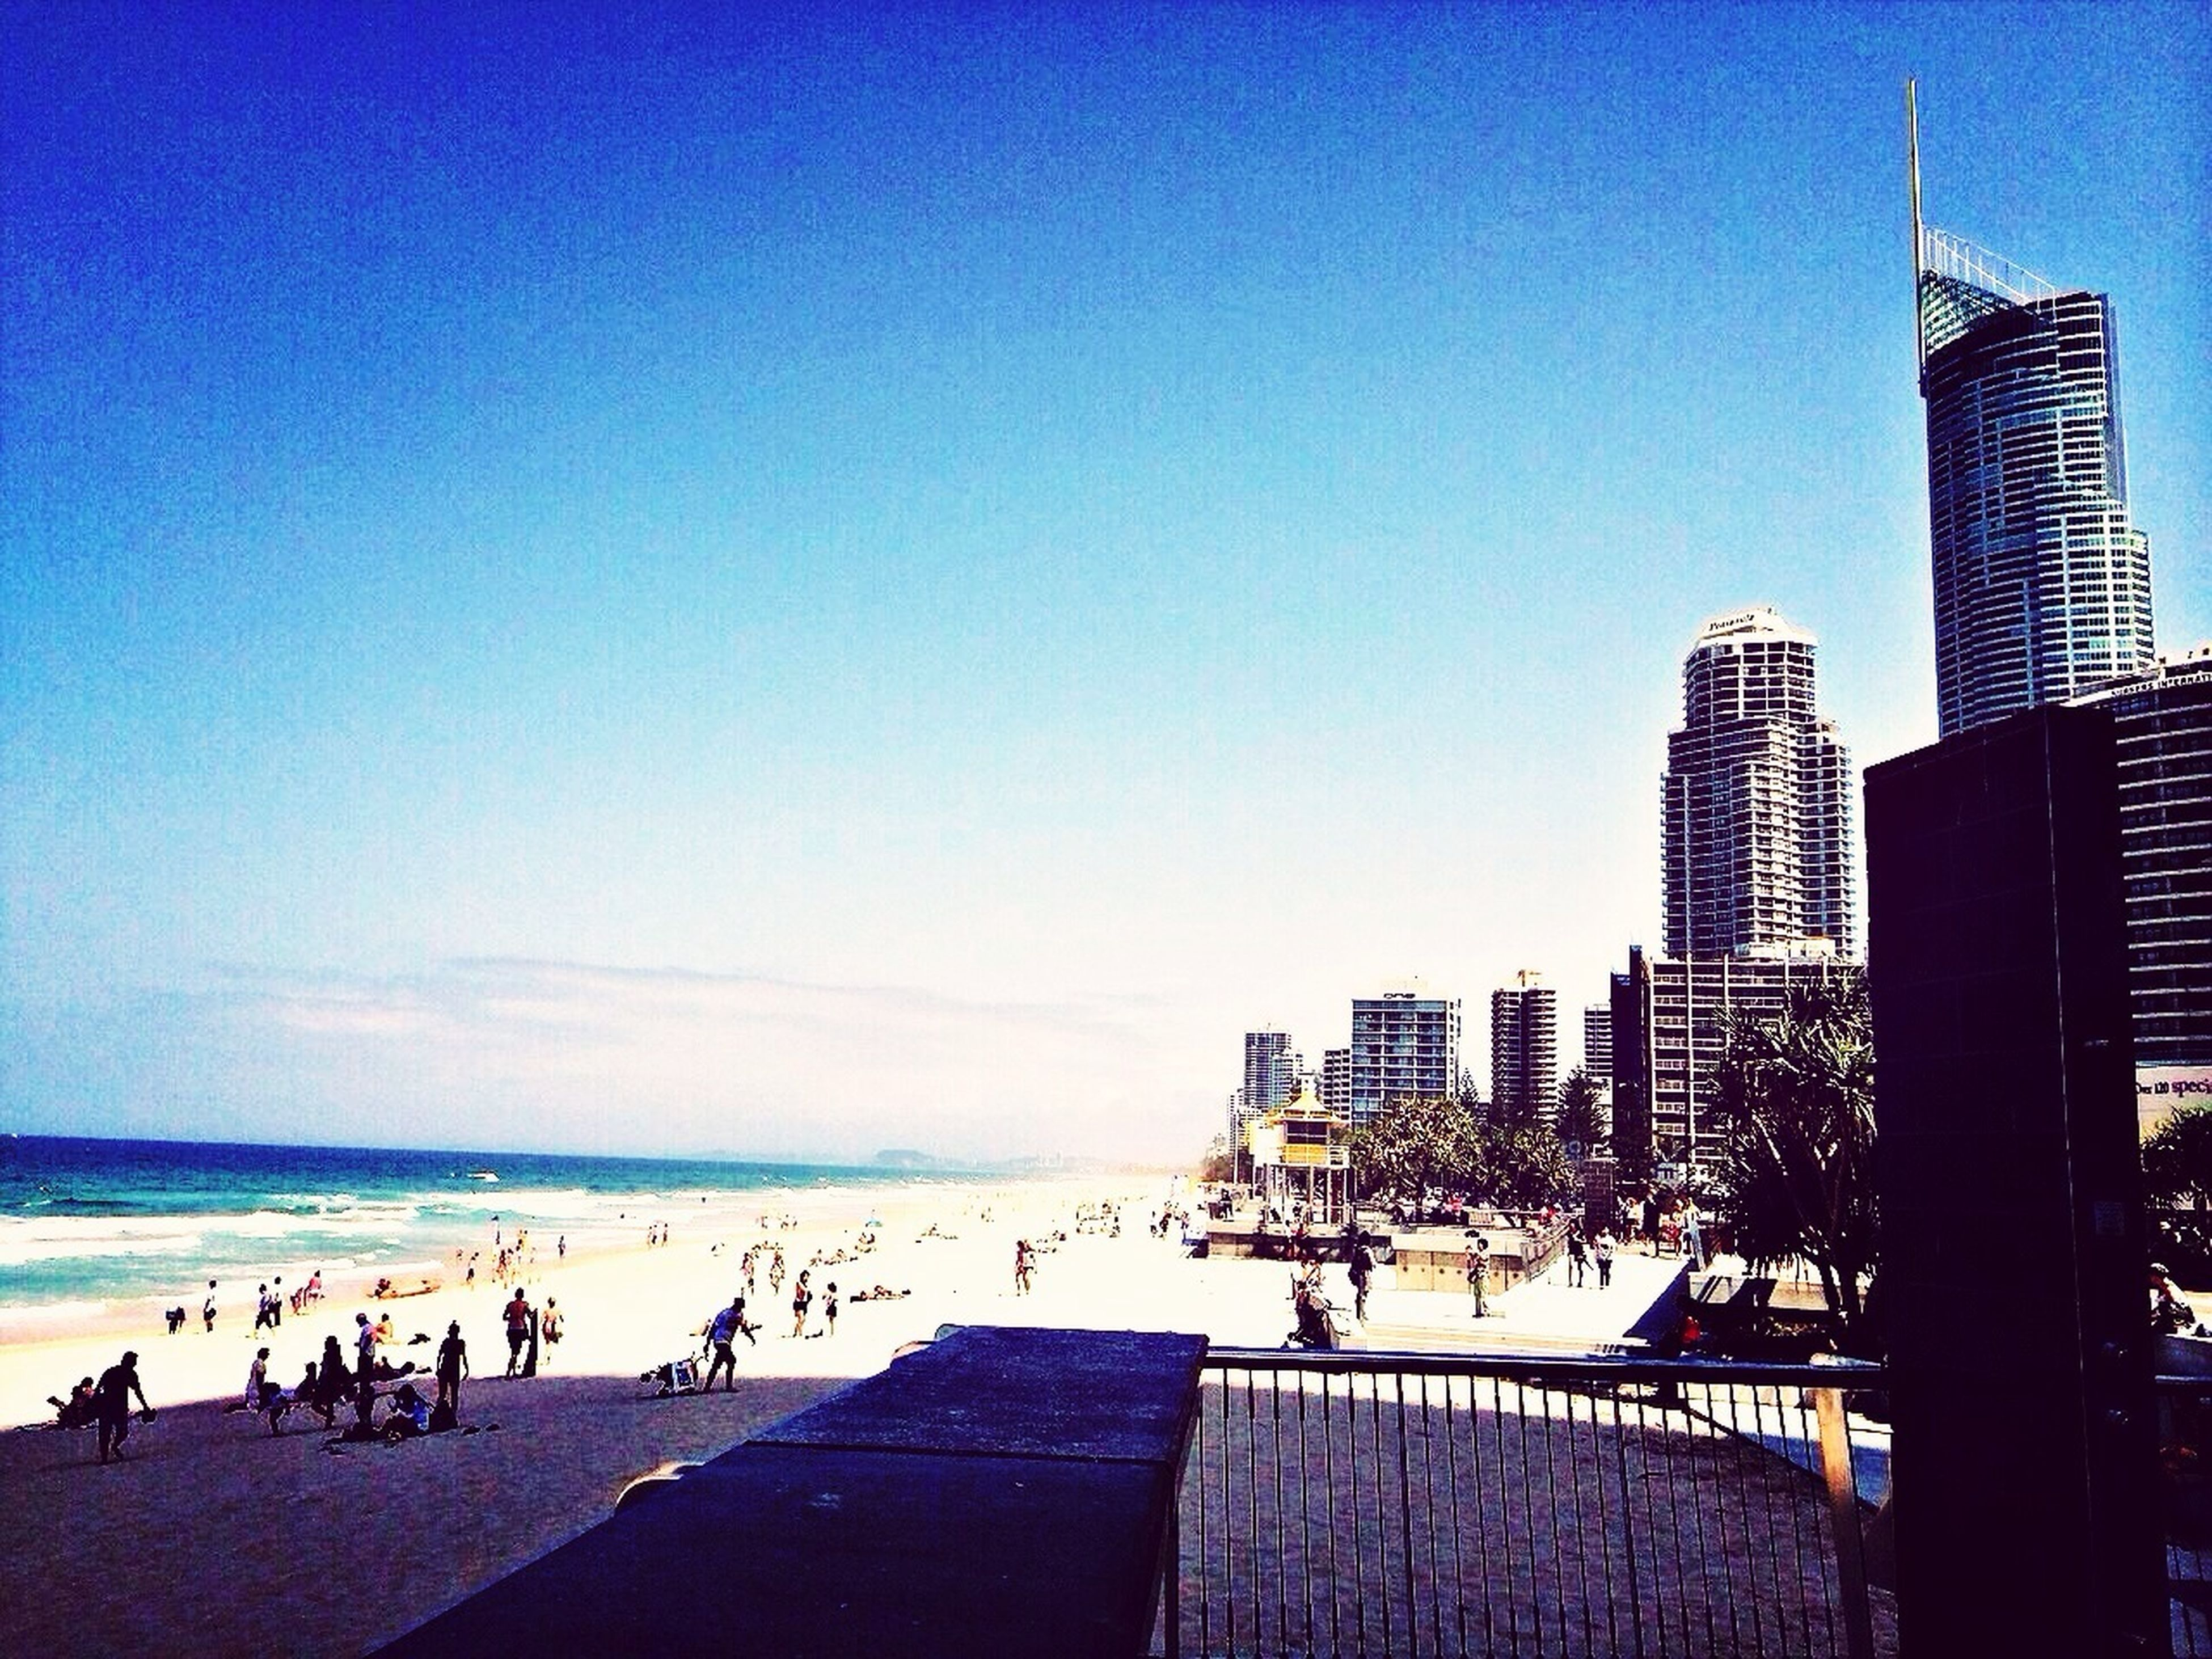 large group of people, sea, building exterior, beach, built structure, architecture, water, clear sky, leisure activity, blue, lifestyles, person, men, copy space, city, vacations, city life, tourist, mixed age range